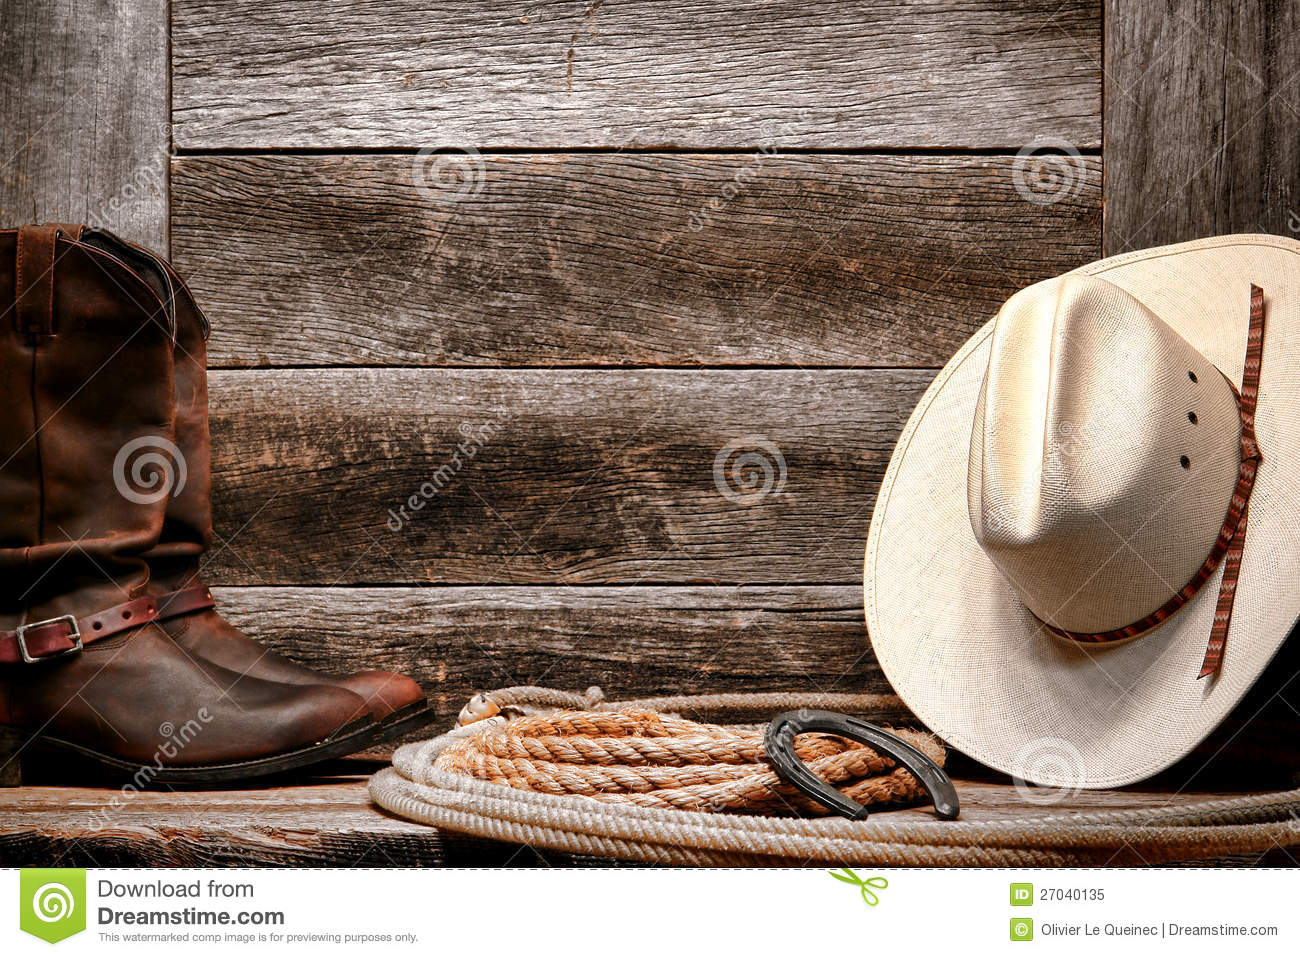 American West rodeo traditional white straw cowboy hat with authentic  Western lariat lasso and roper leather boots on distressed barn wood  background d599bf21819a